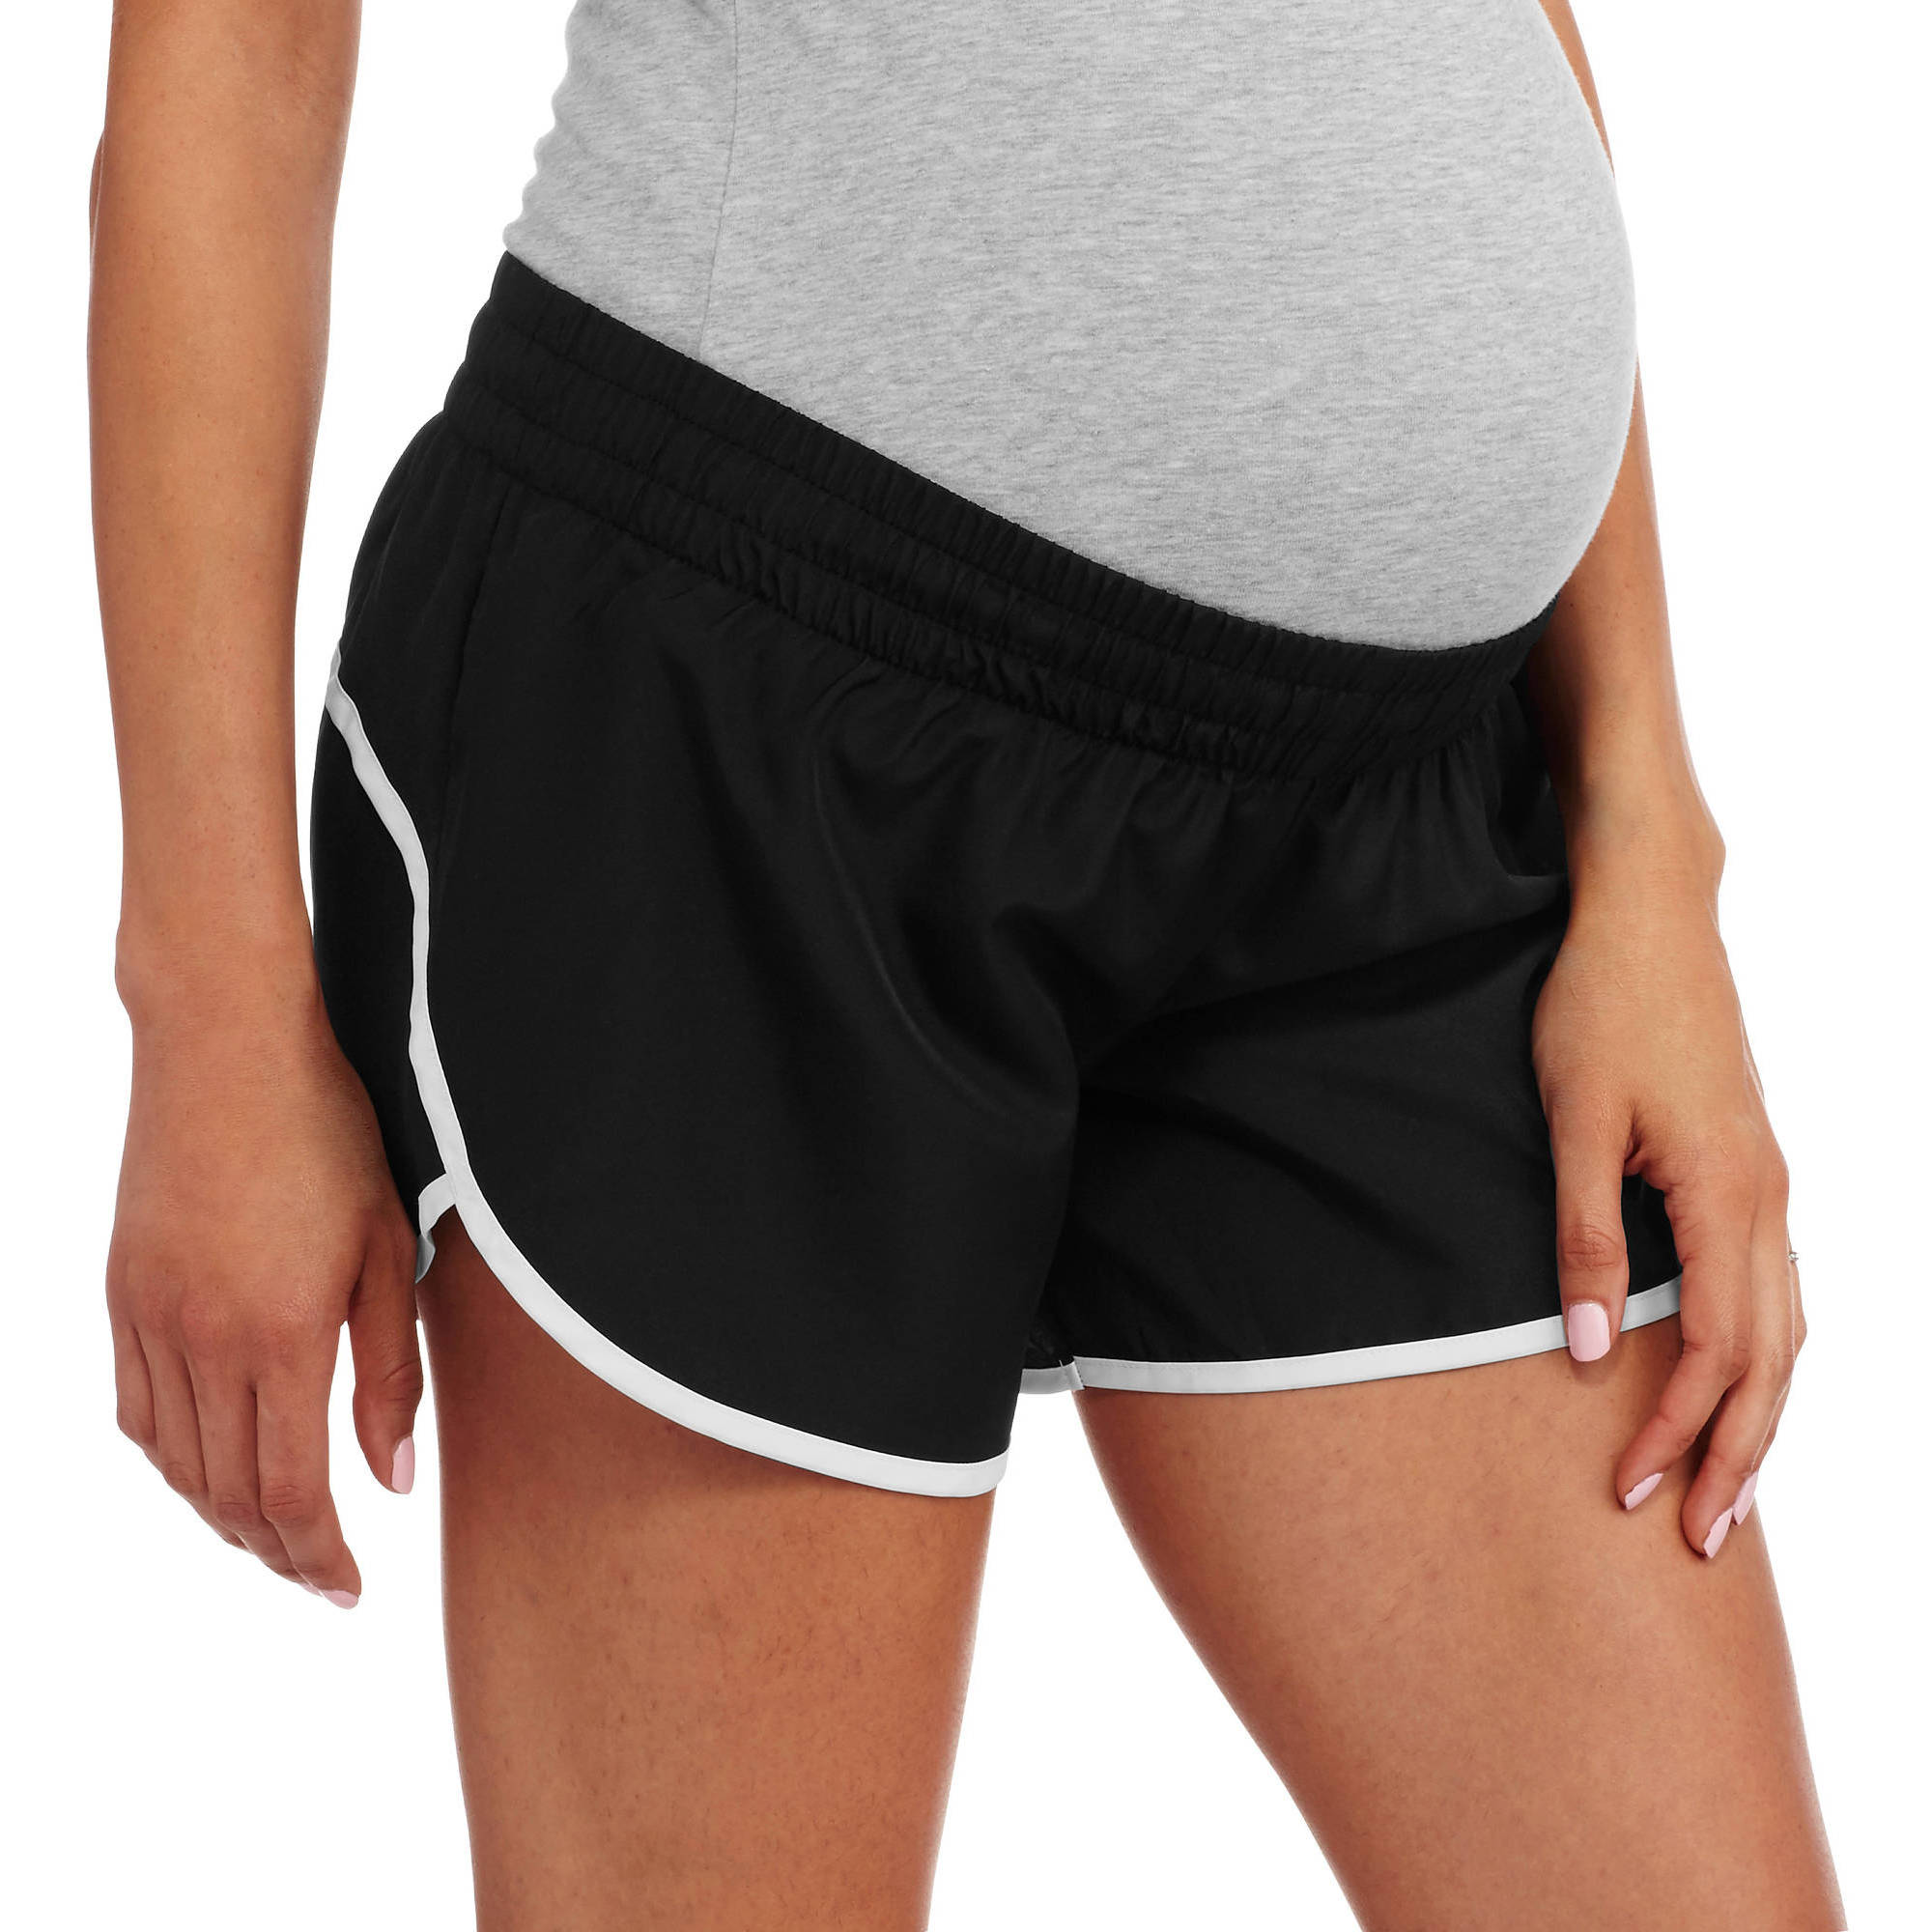 Danskin Now Maternity Woven Running Shorts with Liner